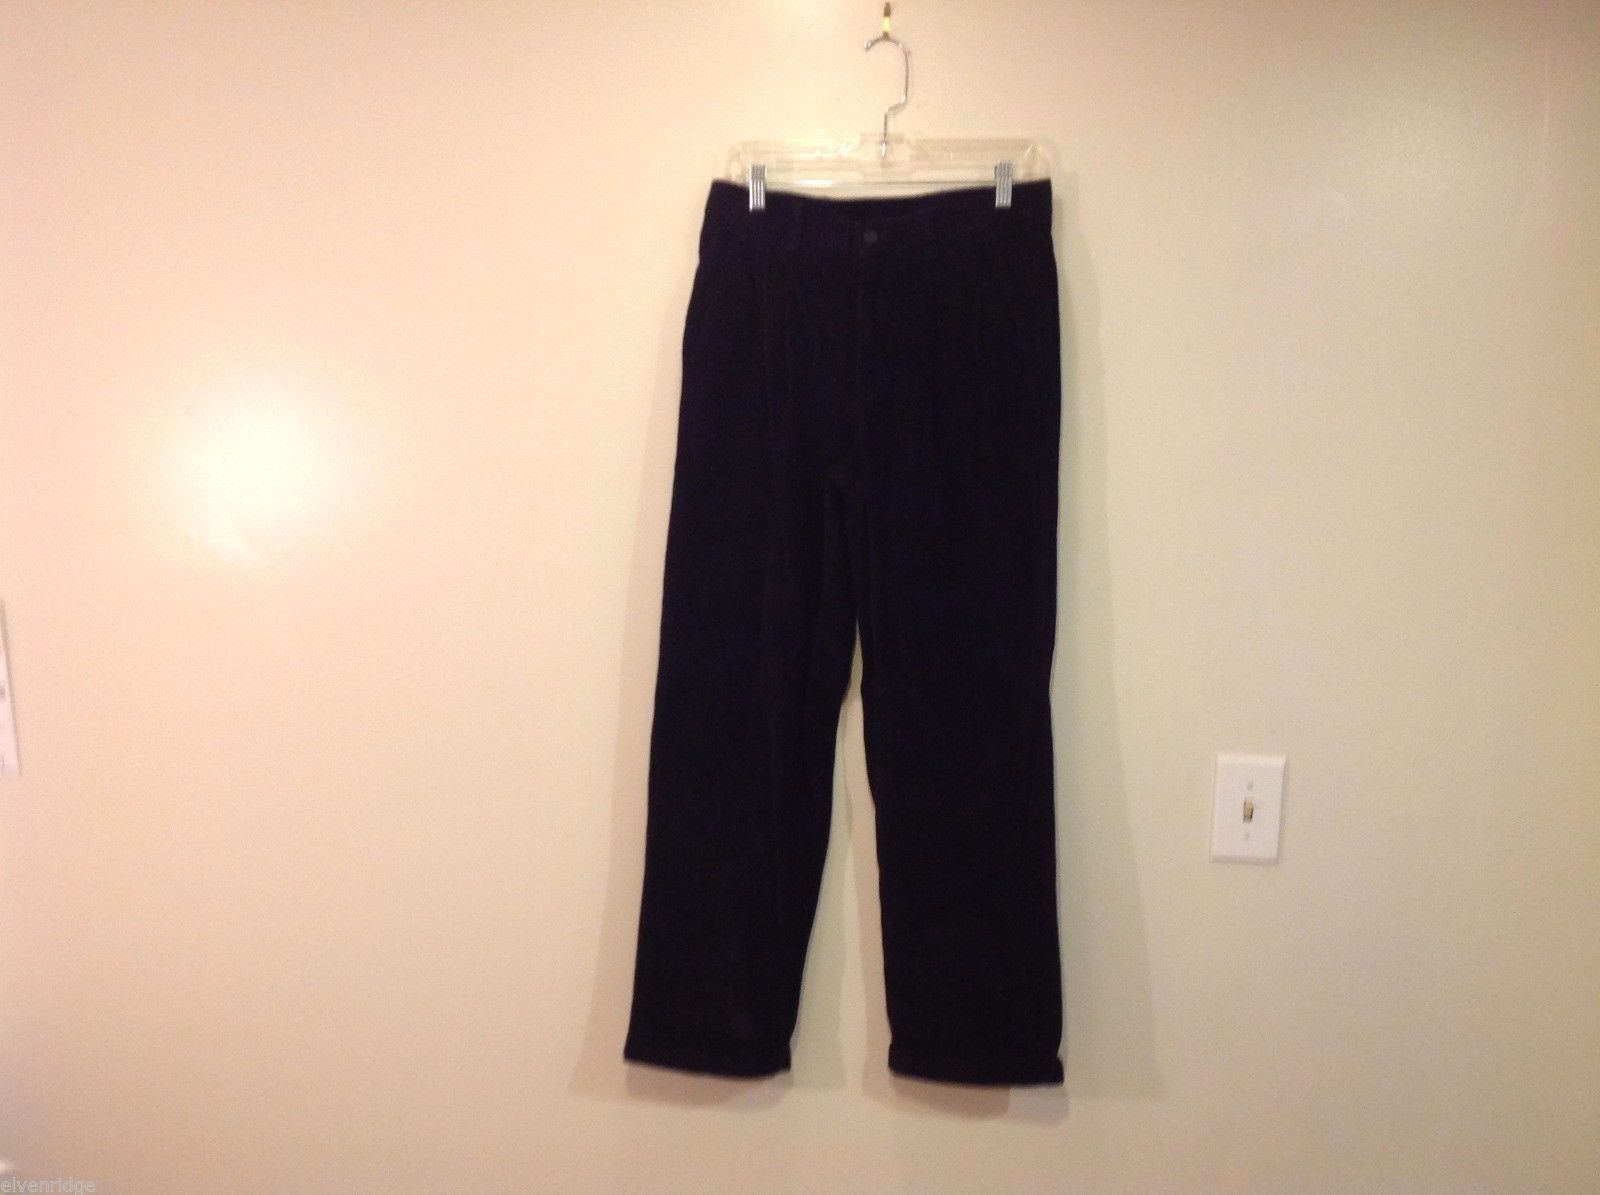 Club Room black corduroy Pants 100% cotton 30 x 41